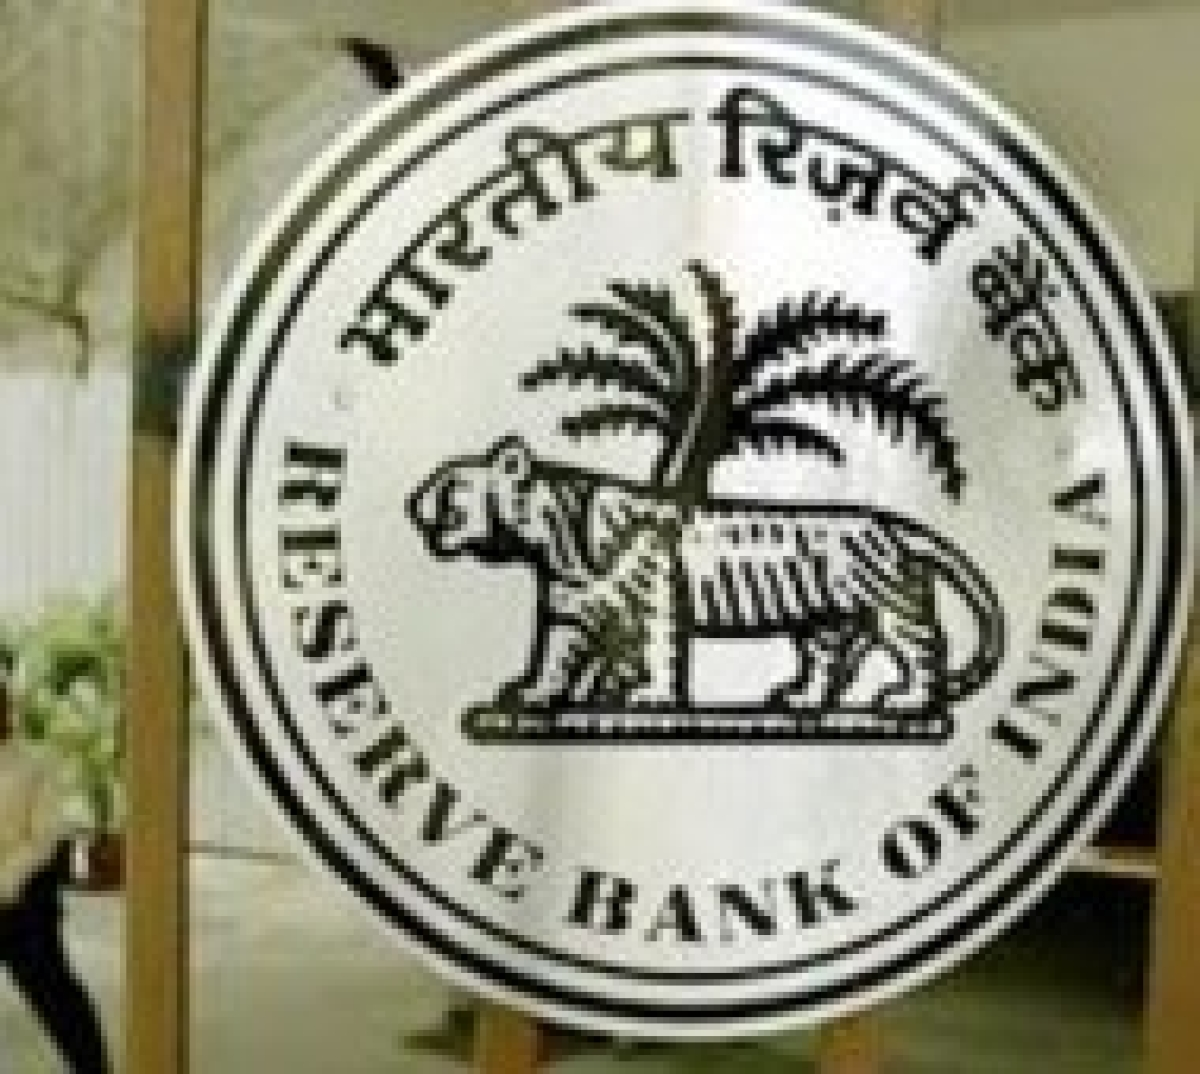 Pay hike to stoke inflation, push up GDP: RBI report